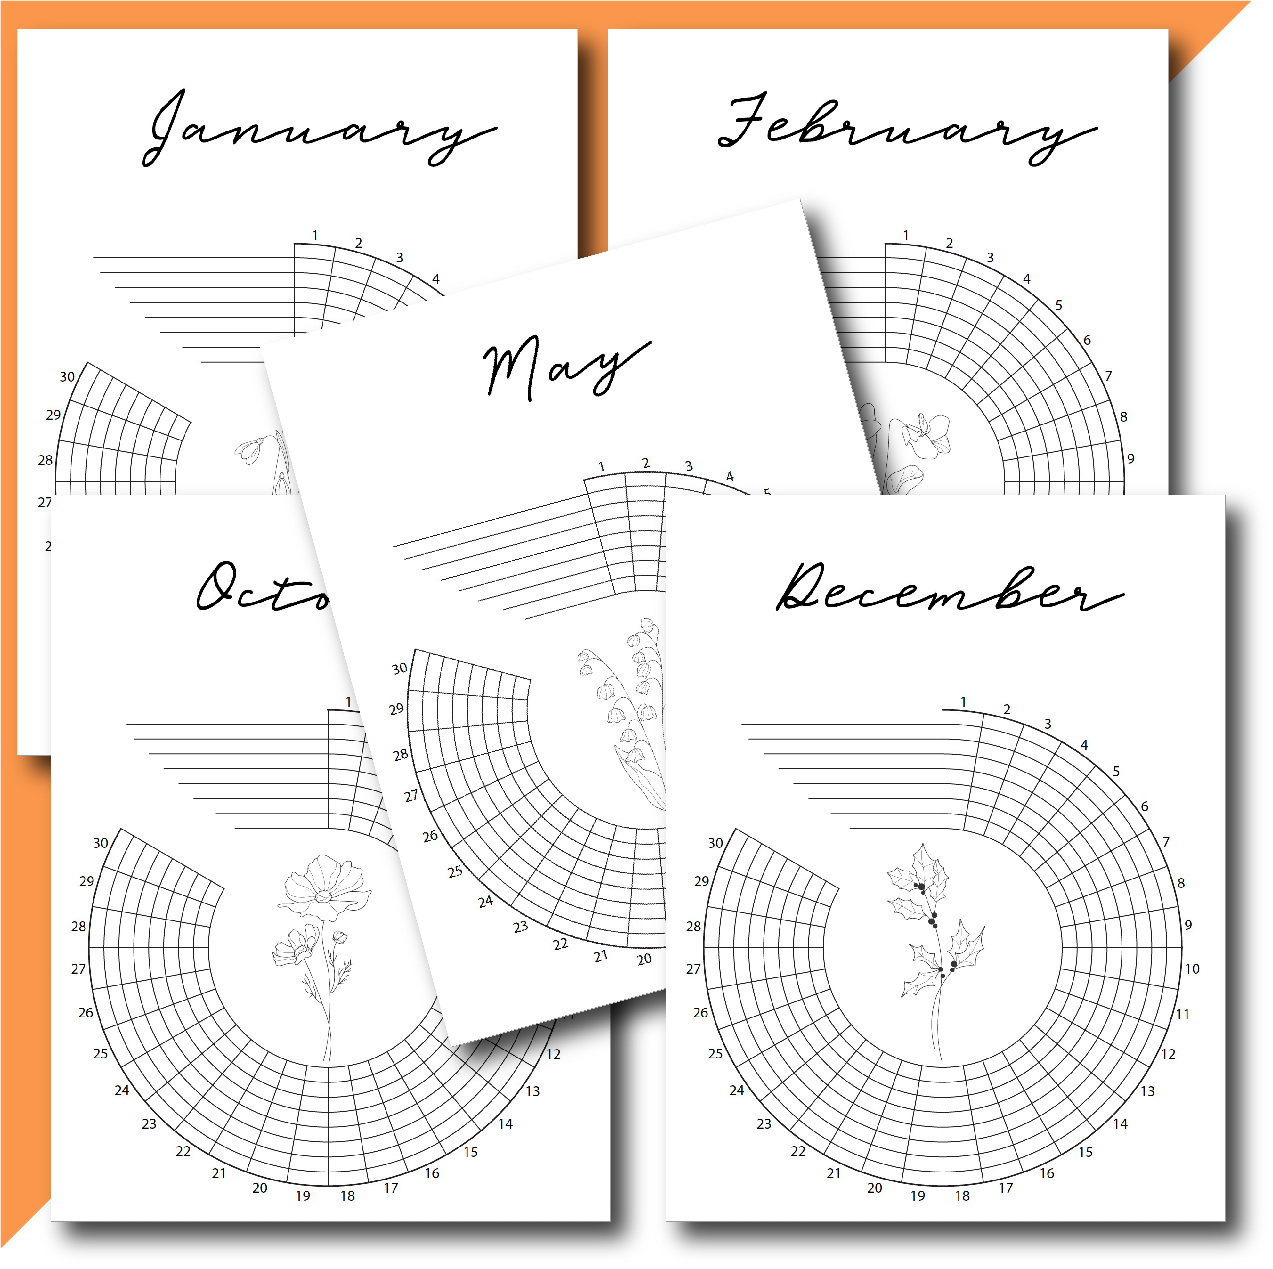 printable habit trackers for each month